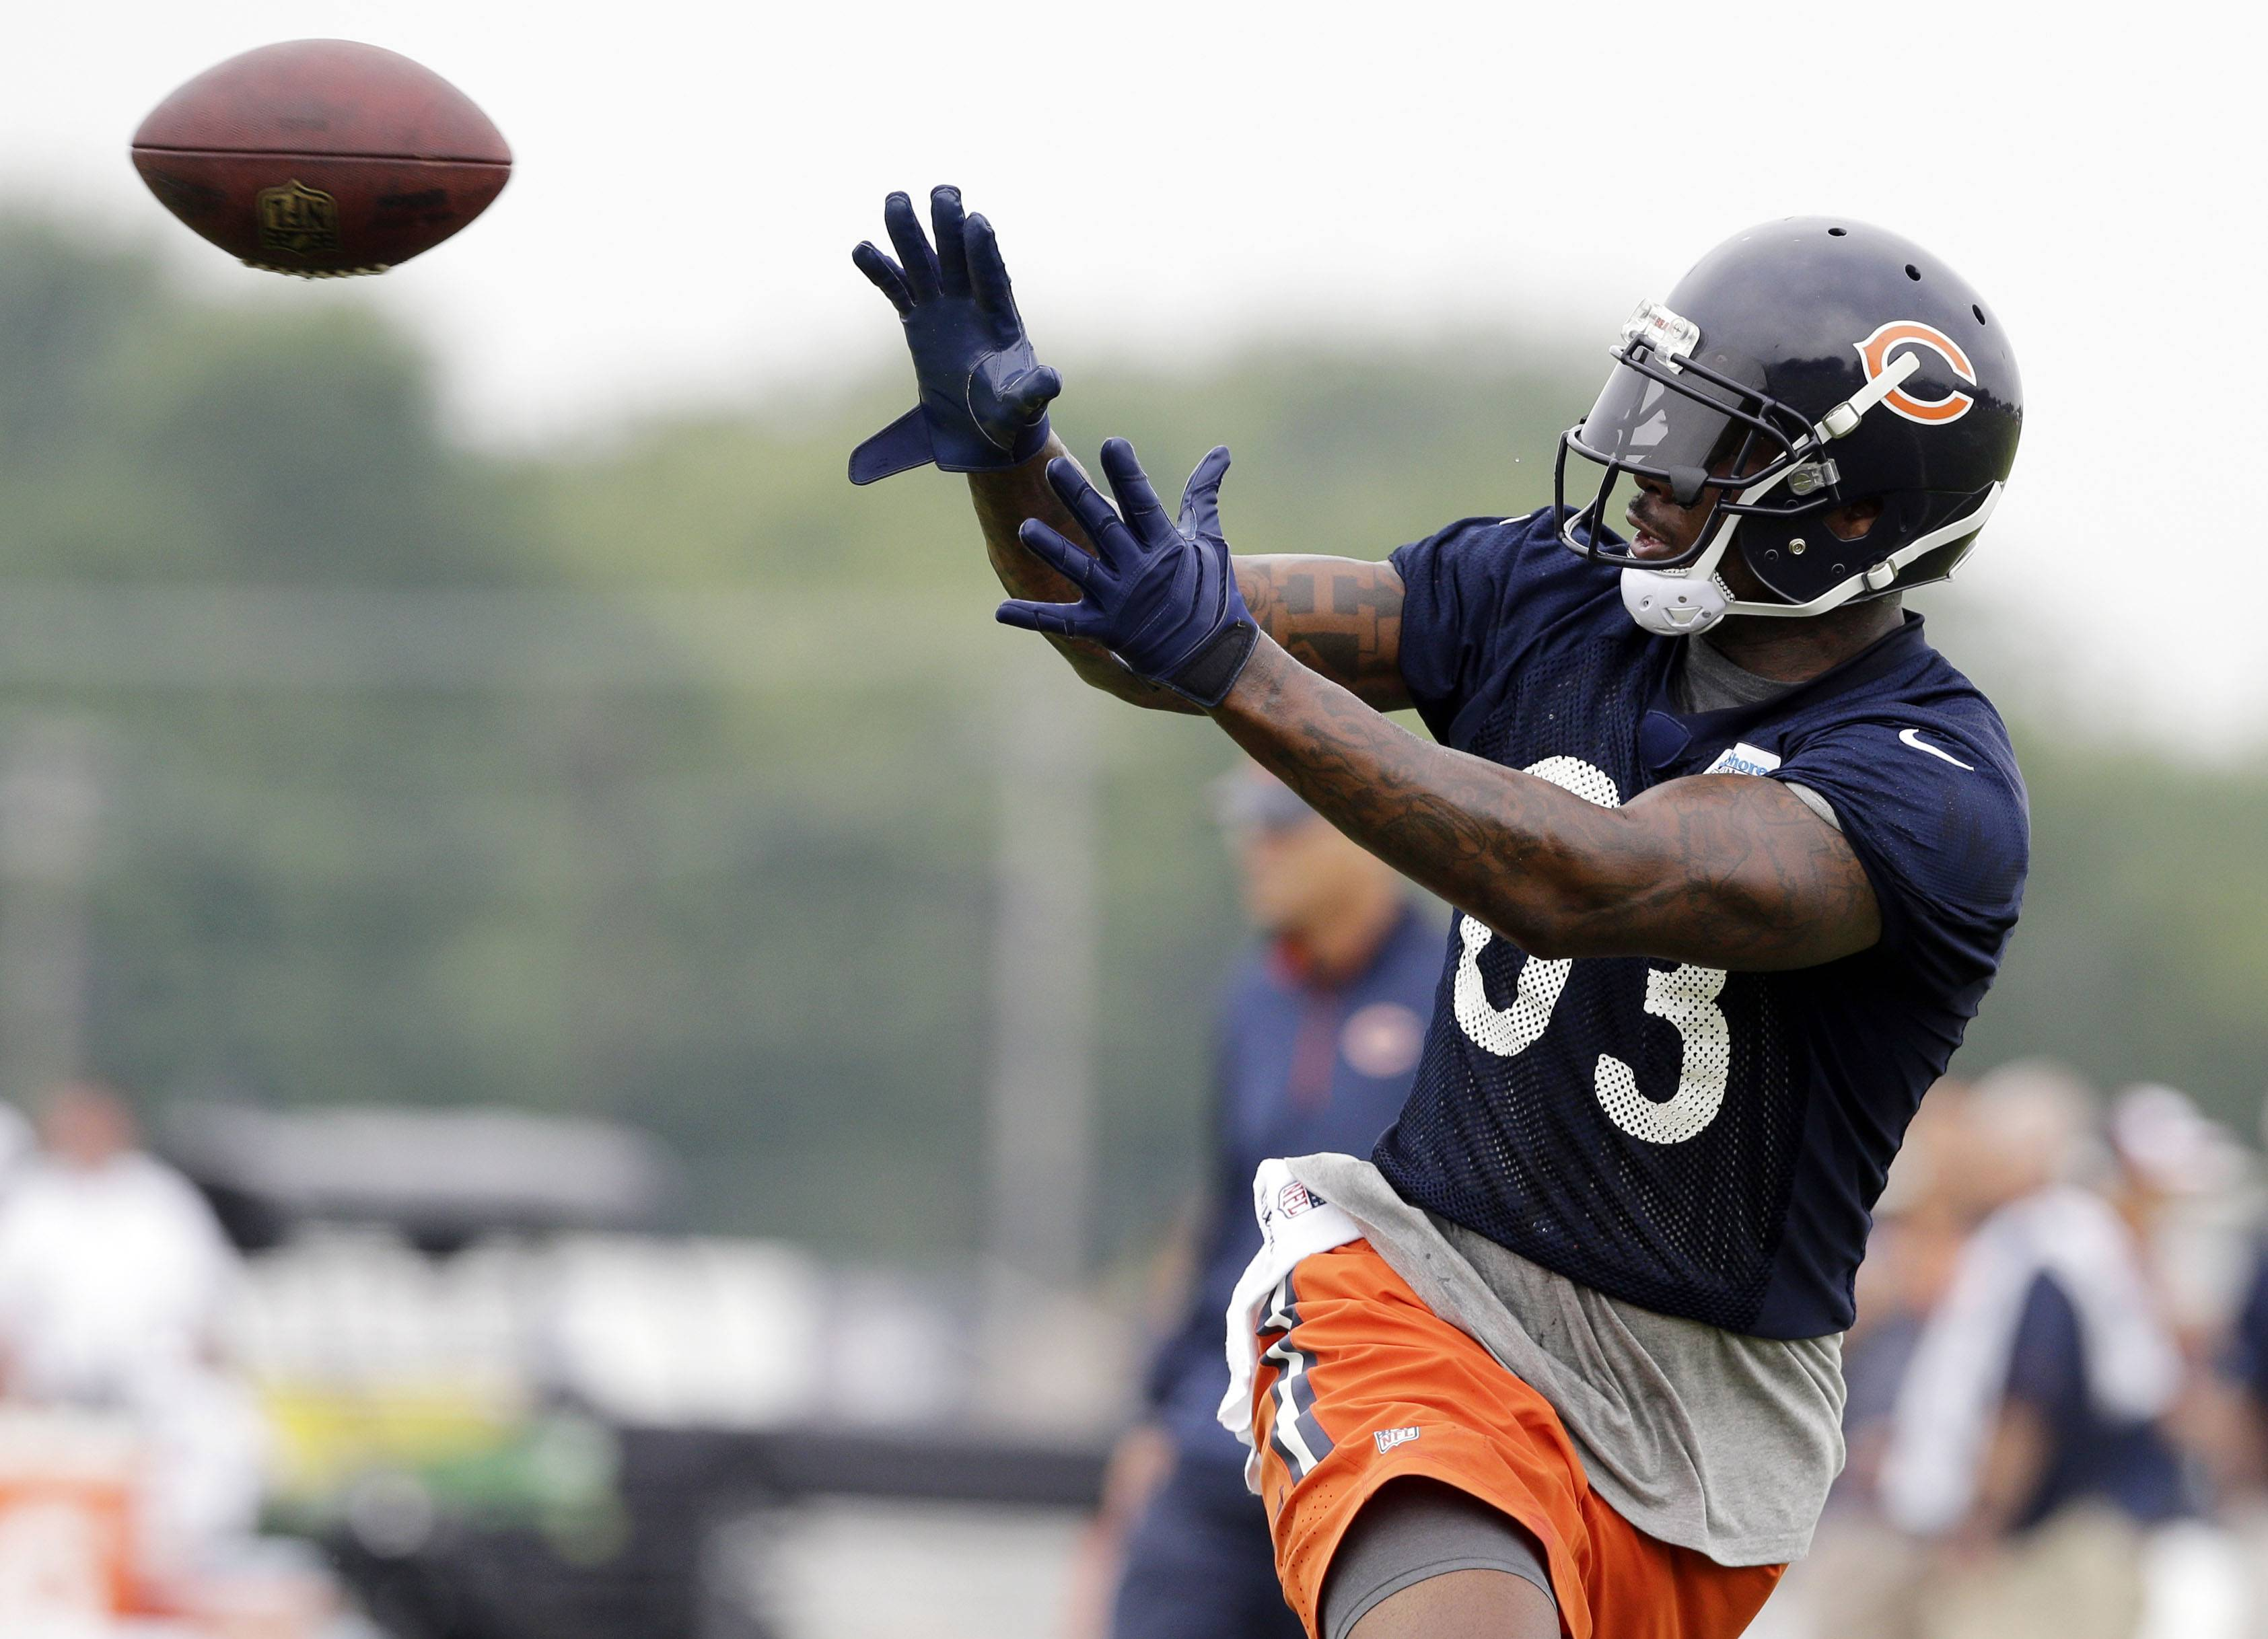 "Bears coach Marc Trestman has been in contact with suspended tight end Martellus Bennett, but Trestman didn't have much to divulge on their Tuesday night conversation. ""It was a very positive conversation,"" Trestman said. ""We just touched base with each other, and I think I'll just leave it at that. We did what we said that we would do, and that was talk."" In Bennett's absence, eighth-year veteran Dante Rosario continued to take most of the first-team reps"